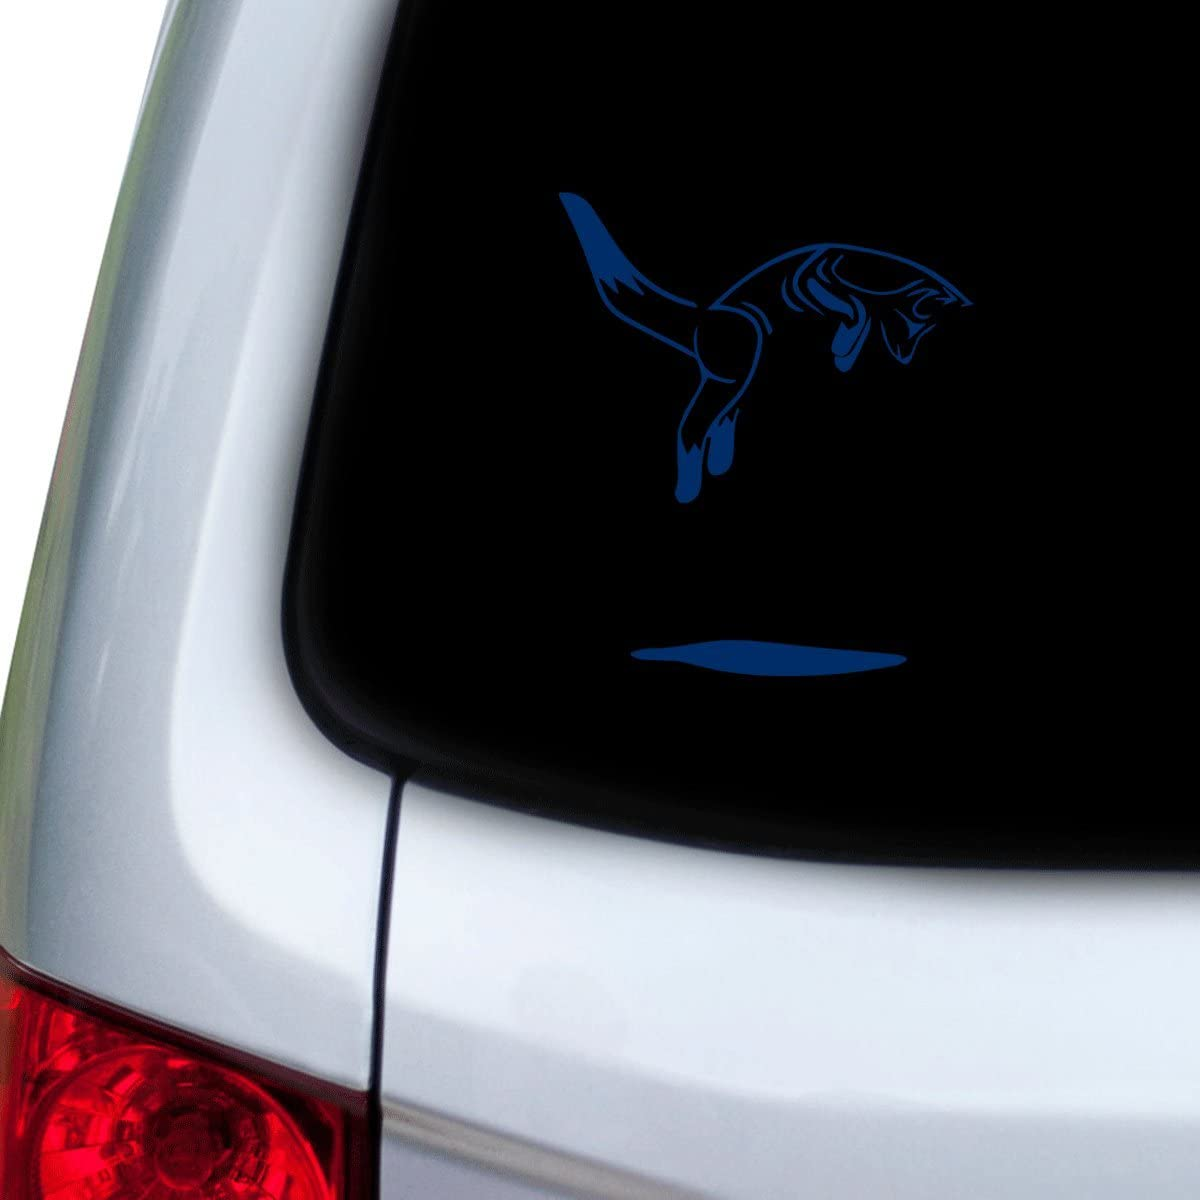 StickAny Car and Auto Decal Series Fox Jumping Sticker for Windows White Hoods Doors